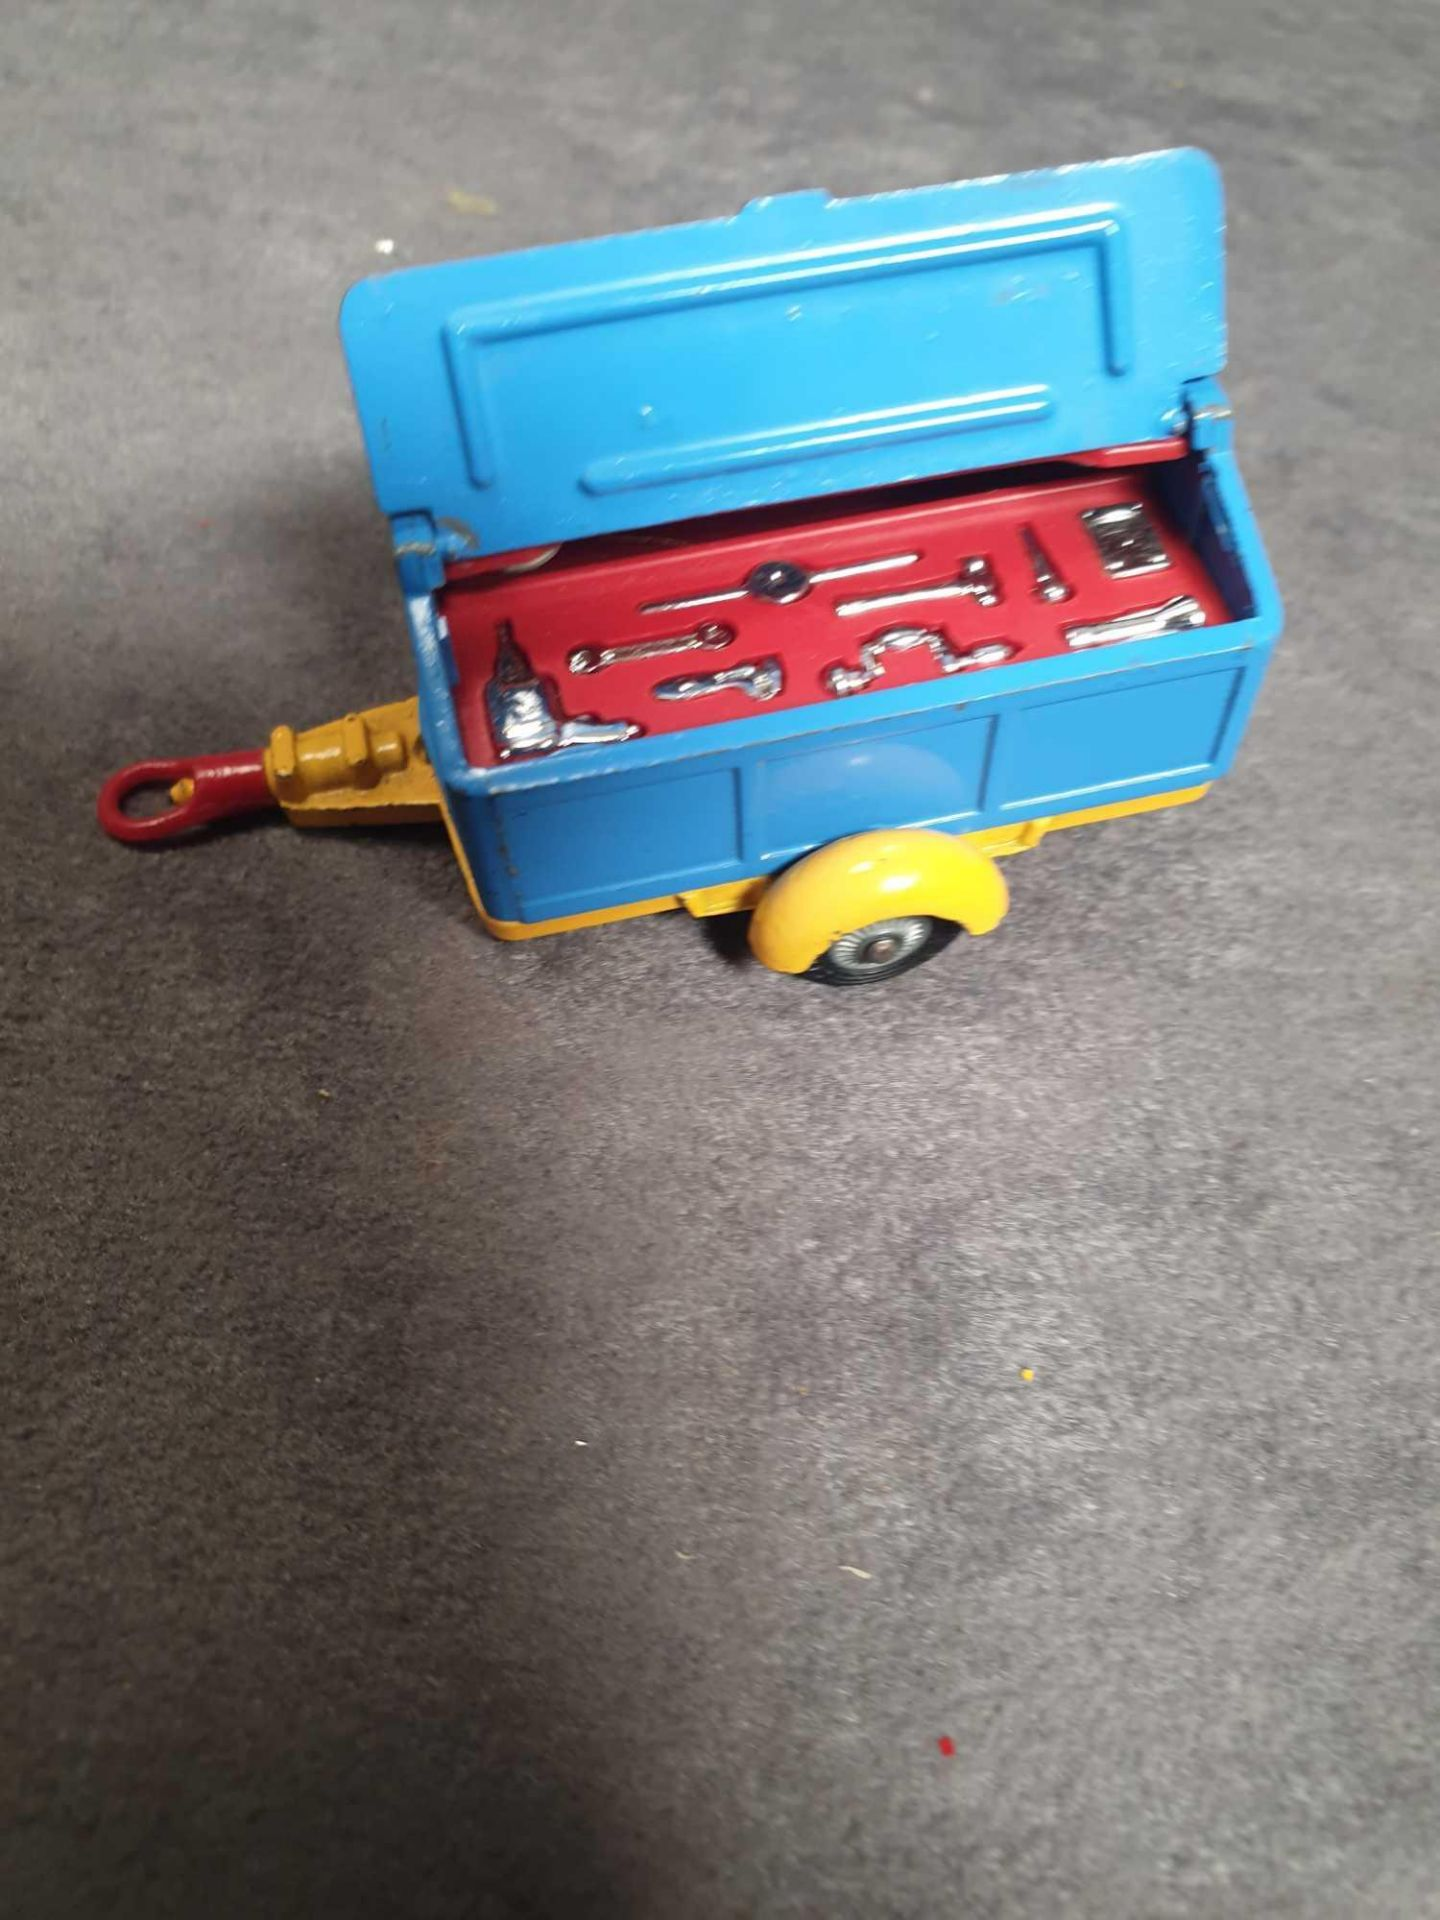 Very Good Corgi Diecast Unboxed #109 Pennyburn Trailer Blue/Yellow - Image 2 of 4